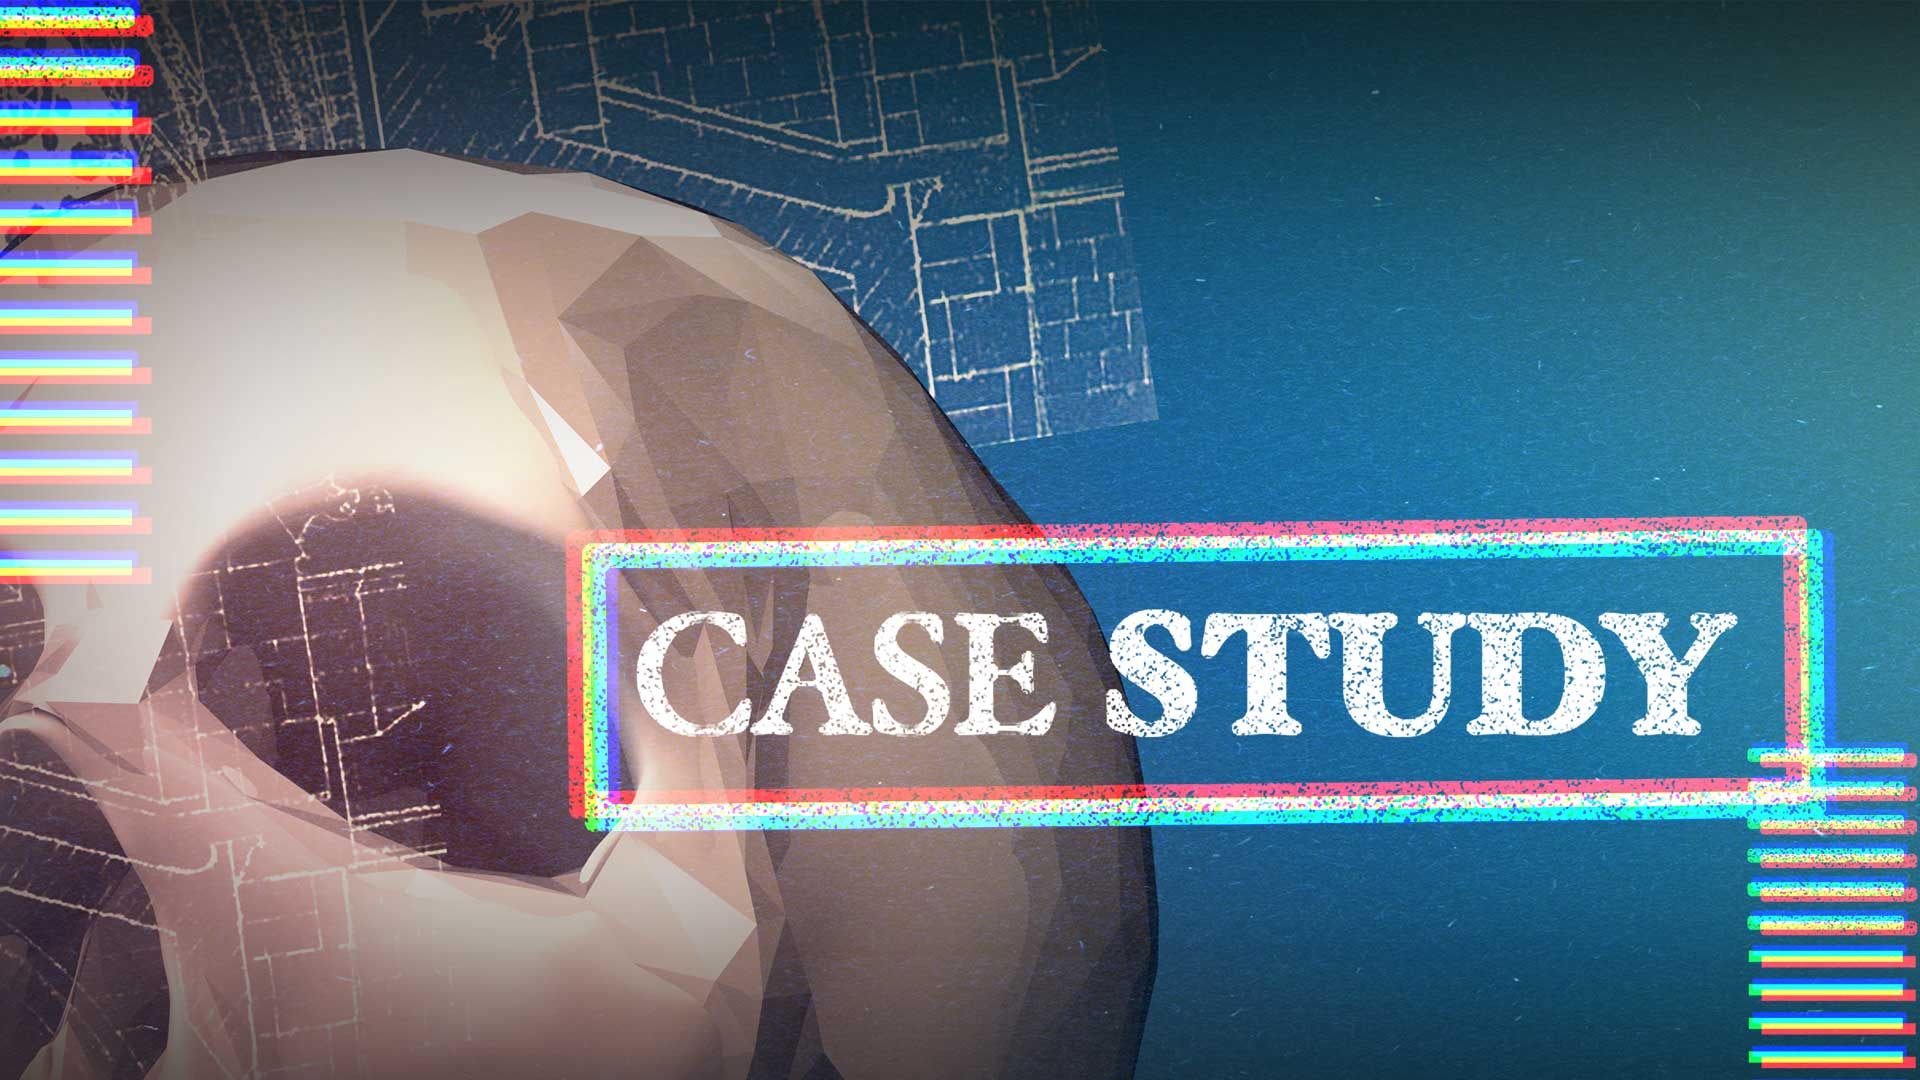 case study wallpaper